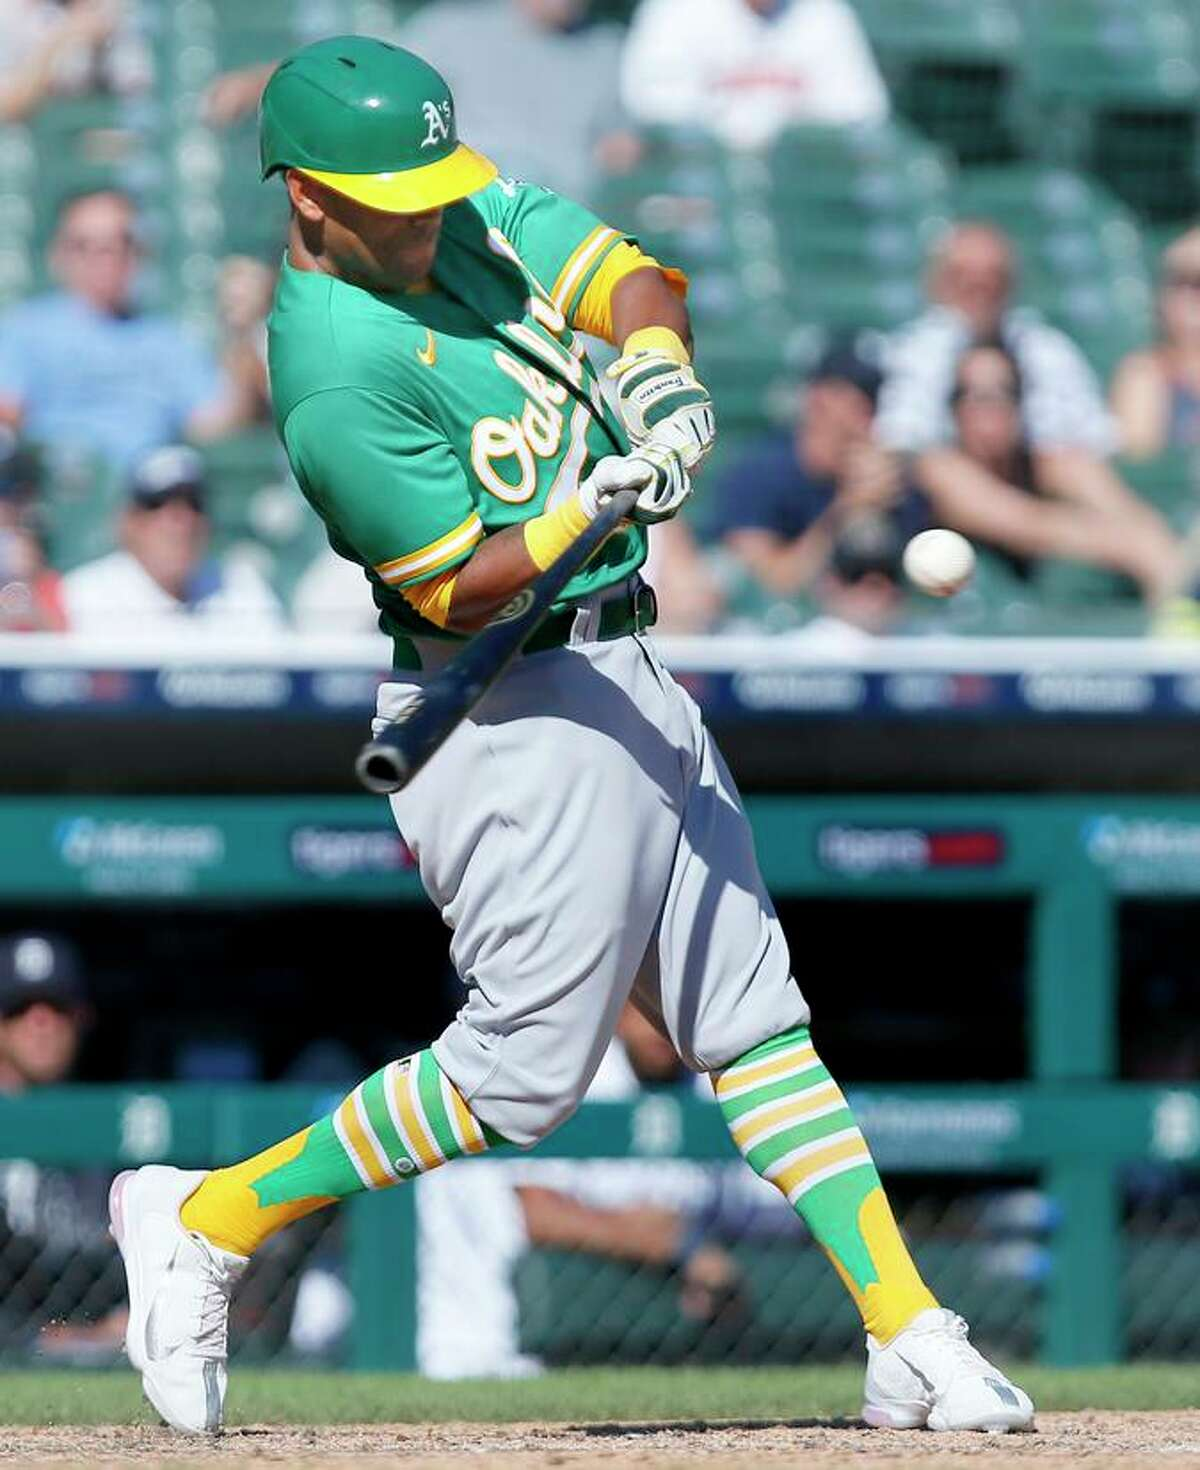 The A's built an early eight-run lead, capped by an RBI double from Khris Davis, and held on for an 8-6 win over Detroit. Davis appeared Thursday as a pinch-hitter for Jed Lowrie.